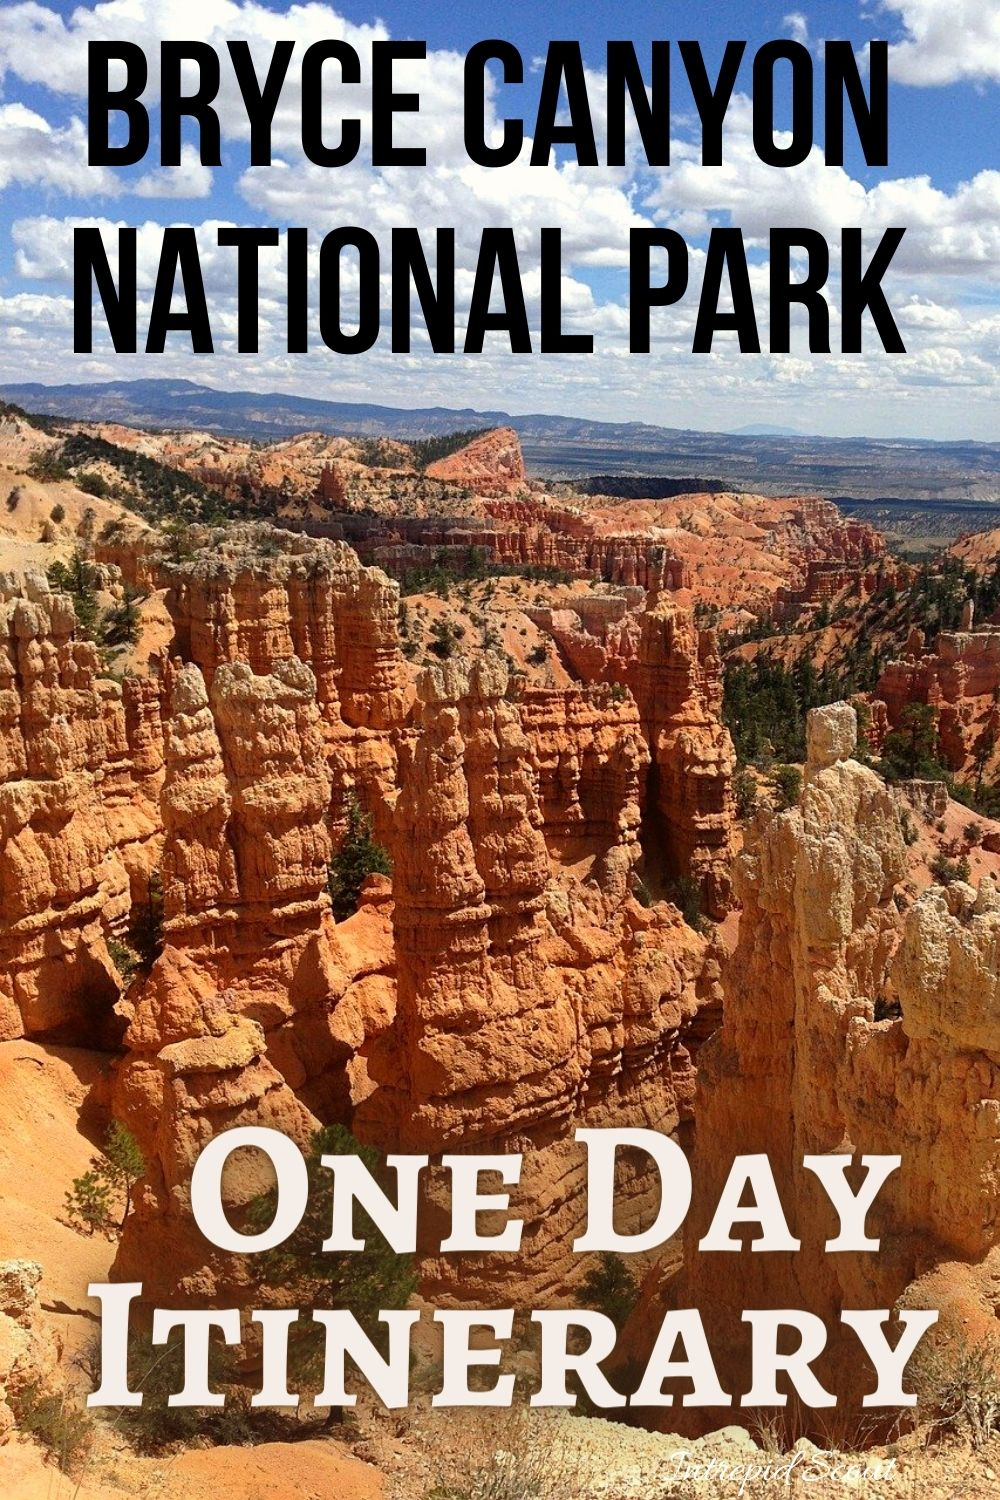 One Day in Bryce Canyon National Par (Step-By-Step One Day Itinerary)